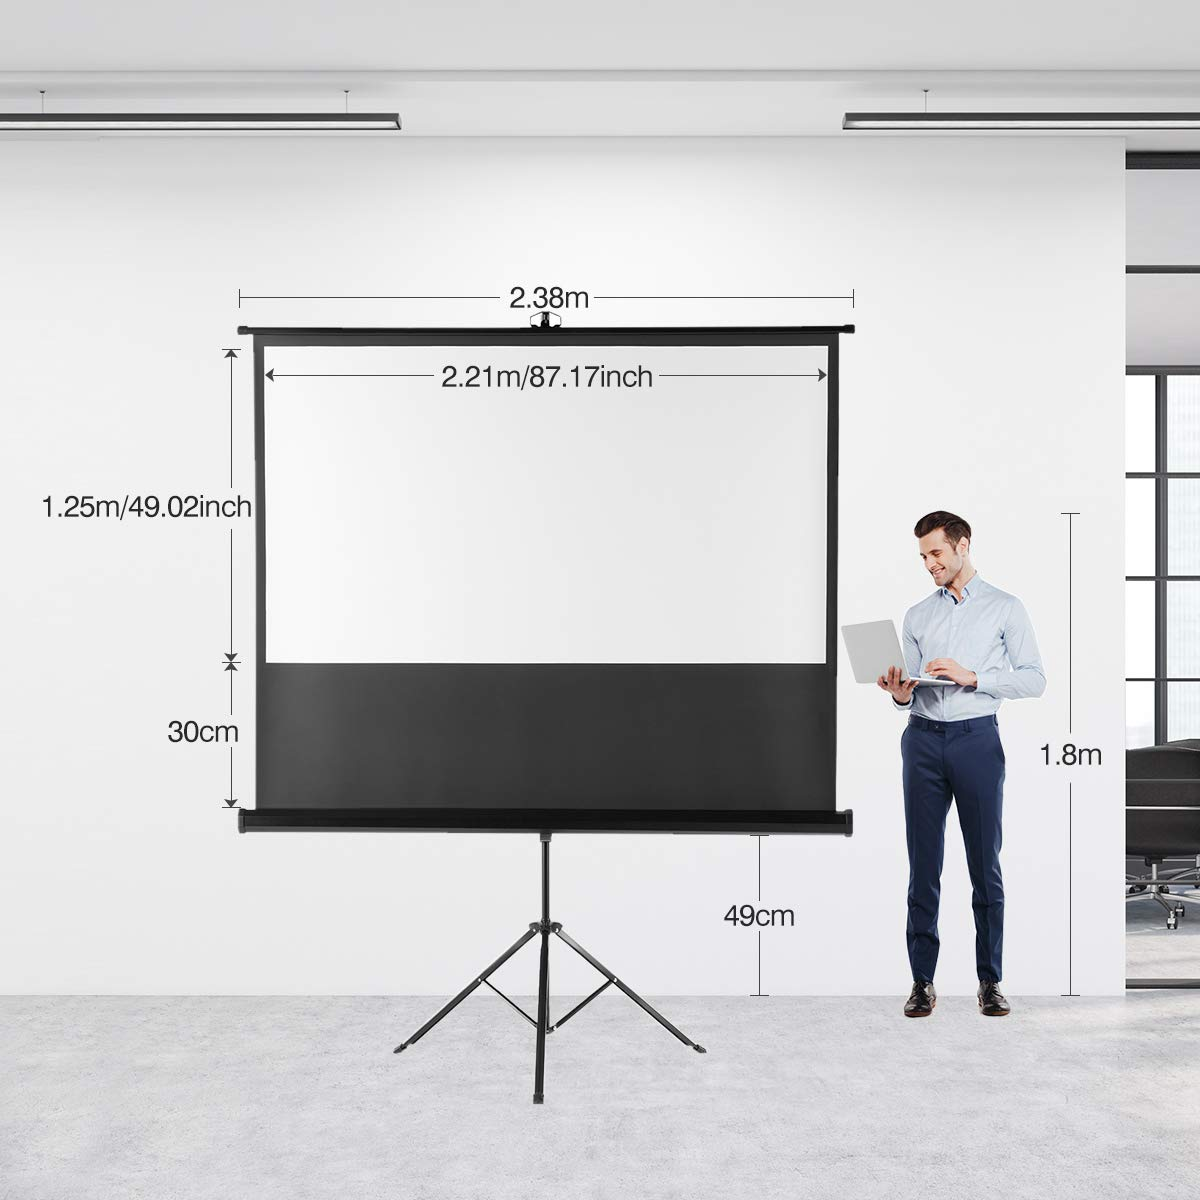 Projector Screen with Stand Excelvan 100 inch Projector Screen Tripod 203cm x152cm Diagonal 16:9 Outdoor Projector Screen Pull Down for HD 4K 8K Home Theater Indoor Outdoor Movie Screen